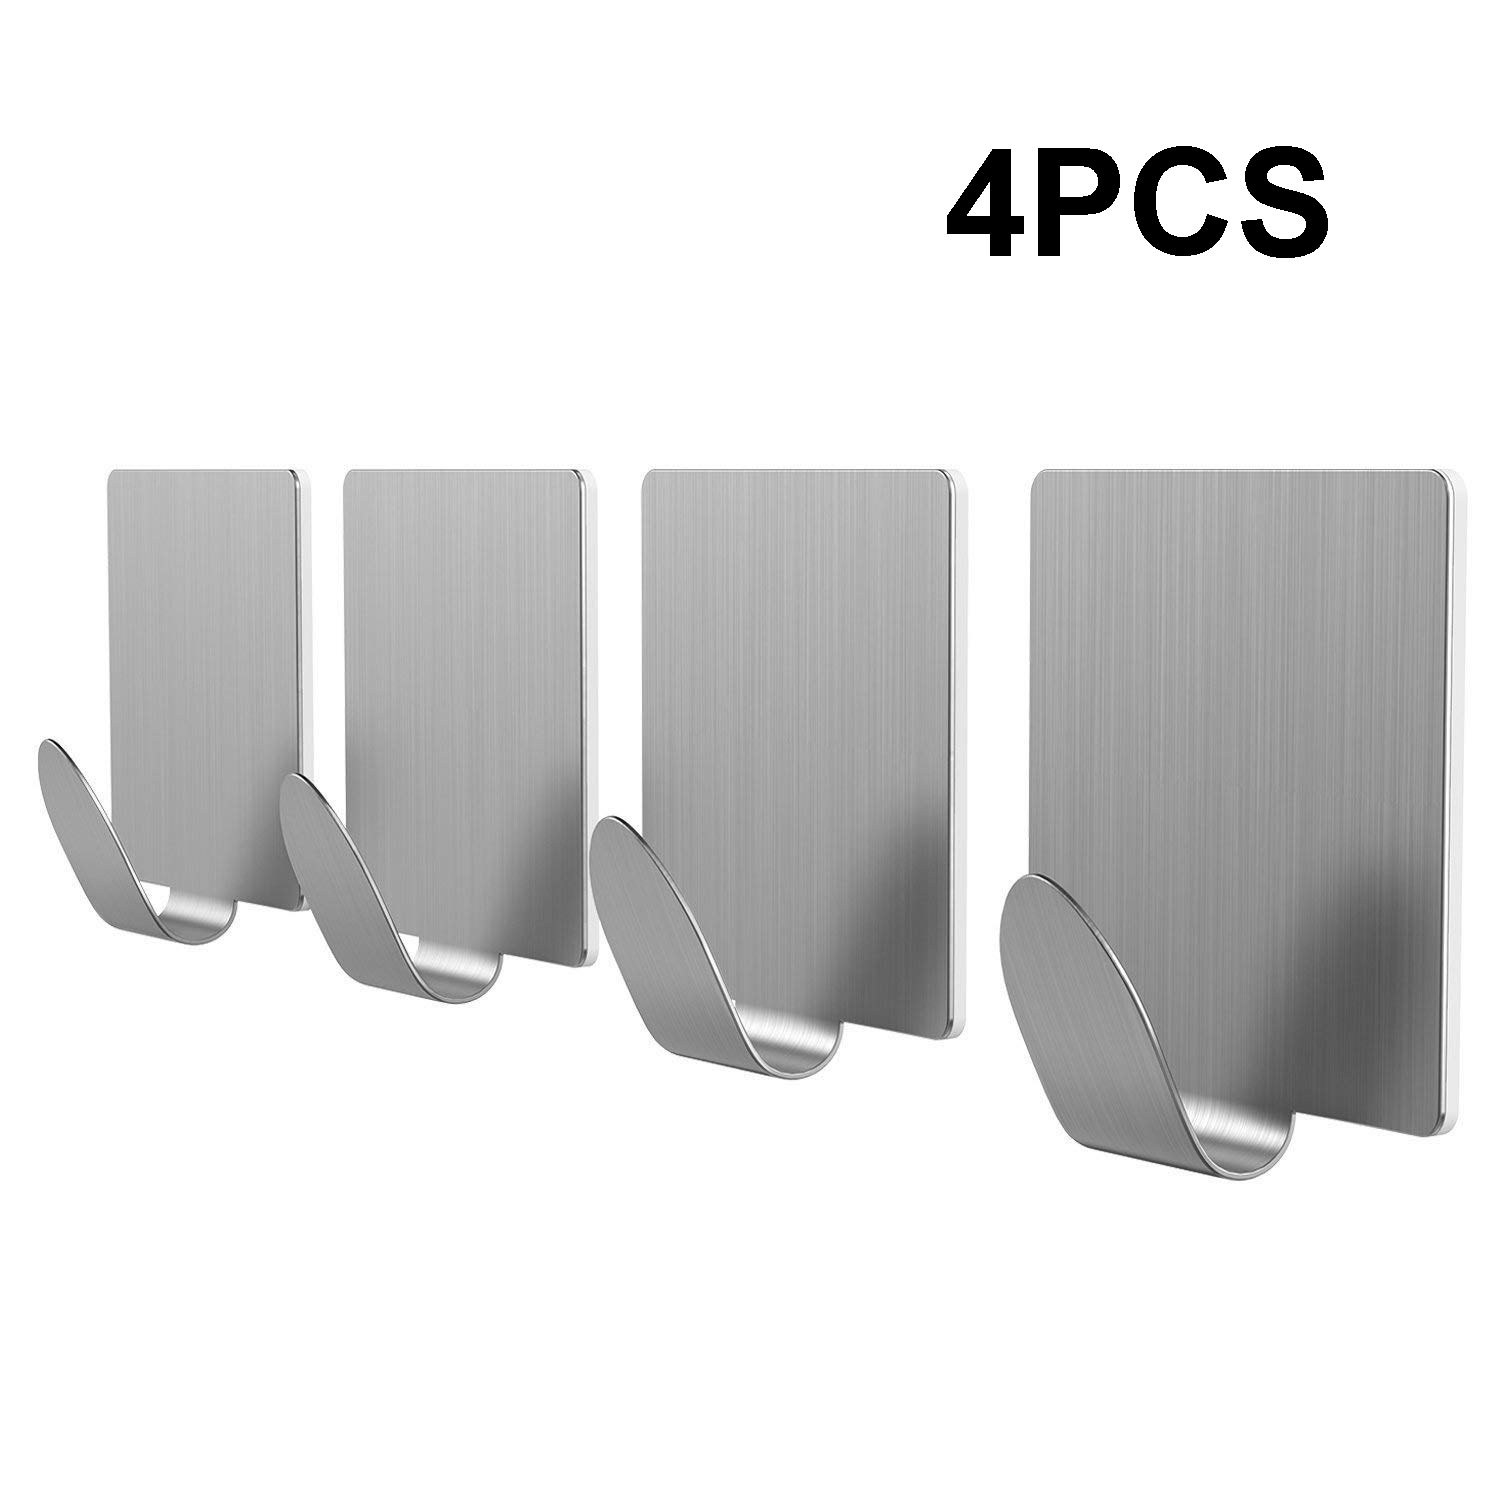 HTB1pFG LmzqK1RjSZFjq6zlCFXa1 - 4pcs Brushed Stainless Steel Wall Hook Kitchen SelfAdhesive Hooks For Hanging Tools Suction Cup Coat Hanger Bathroom Accessories